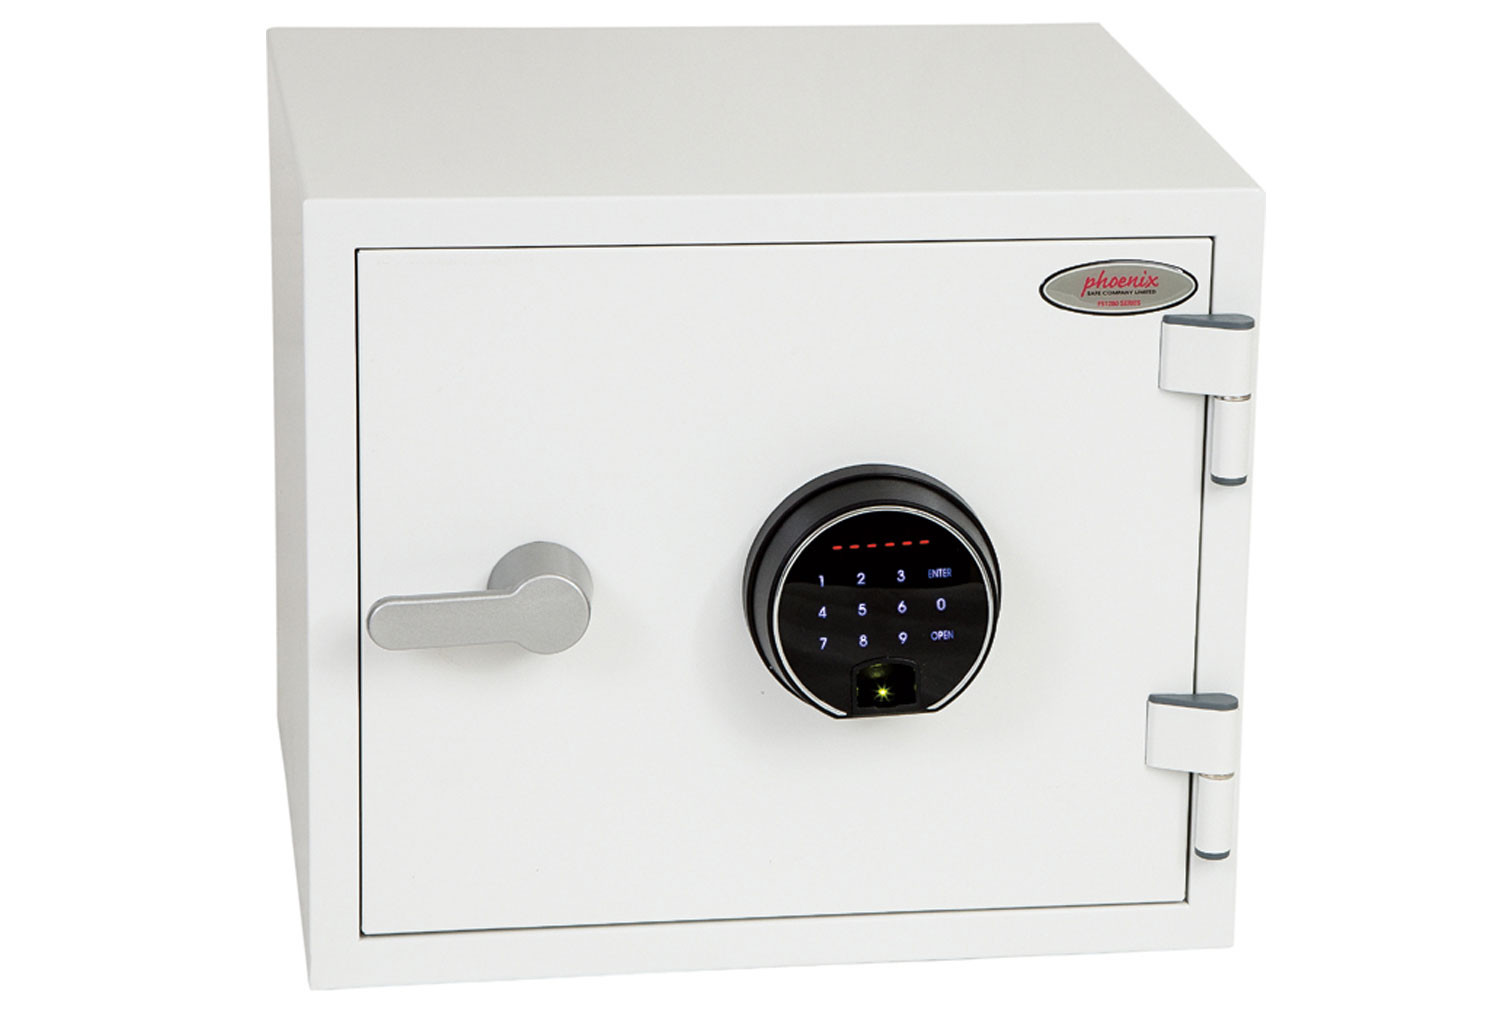 Phoenix Titan FS1281F Fire Safe With Fingerprint Lock (19ltrs)